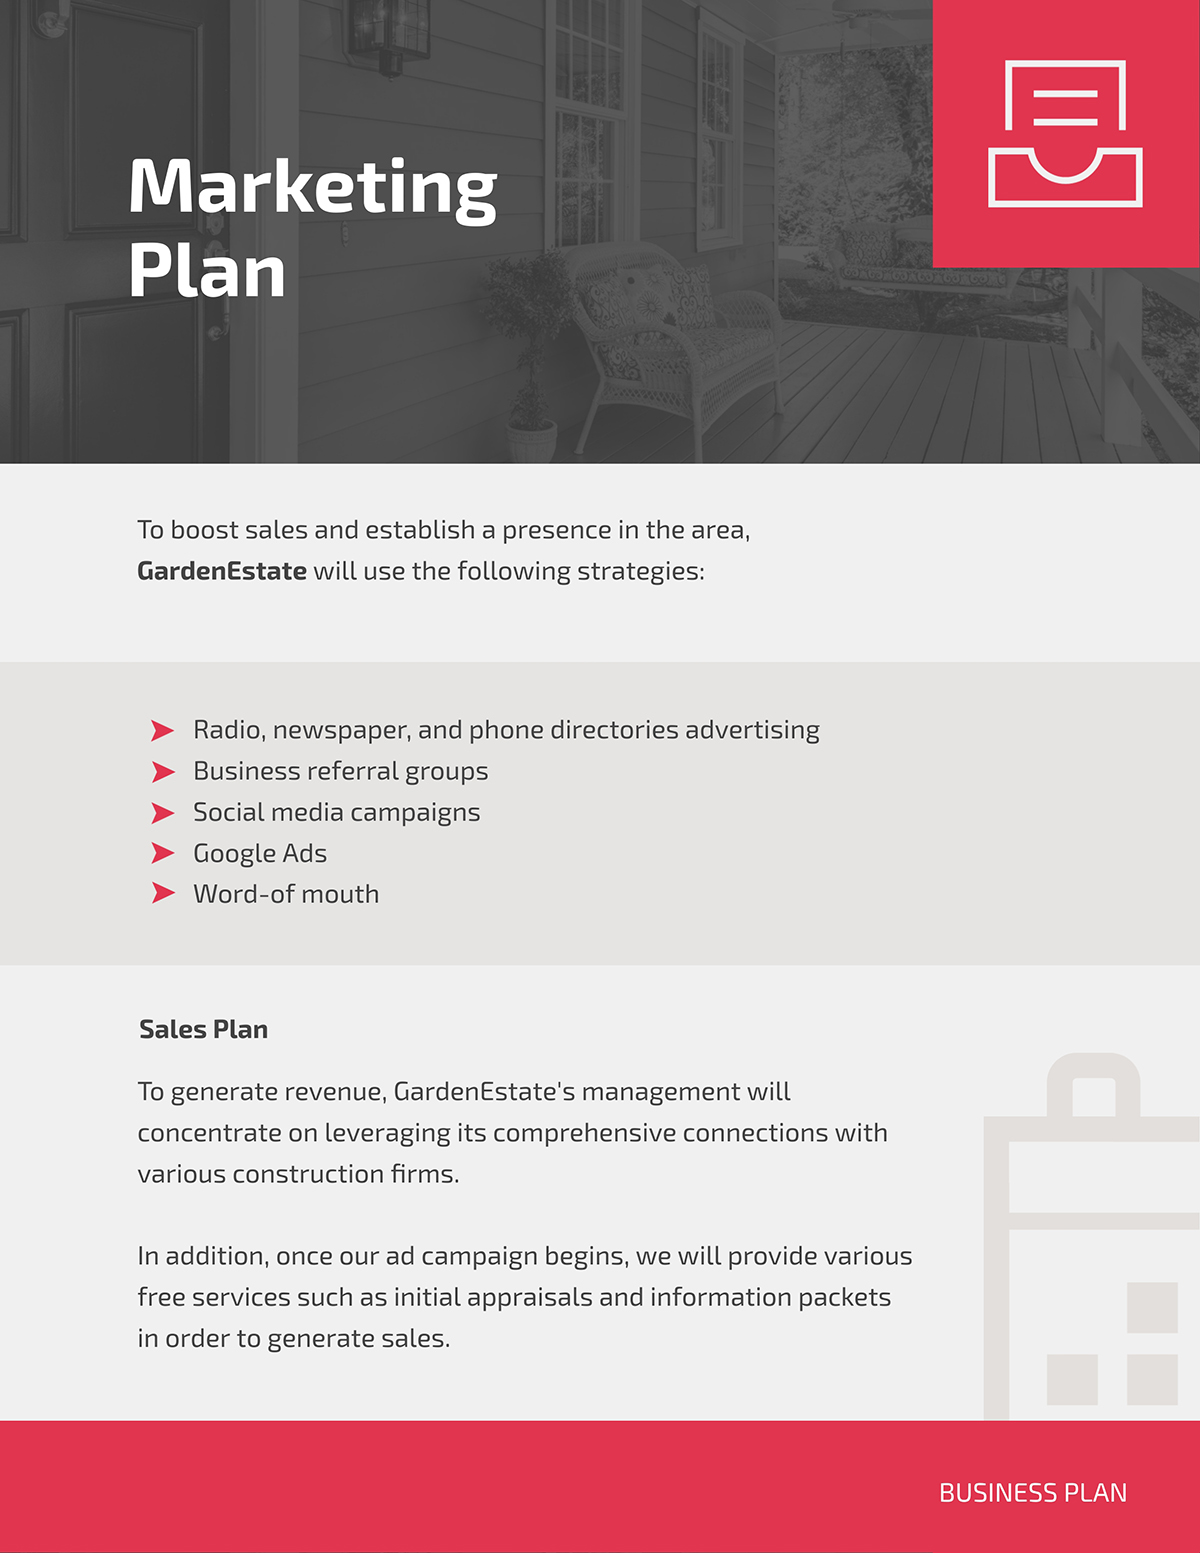 A marketing plan page from a business plan template.